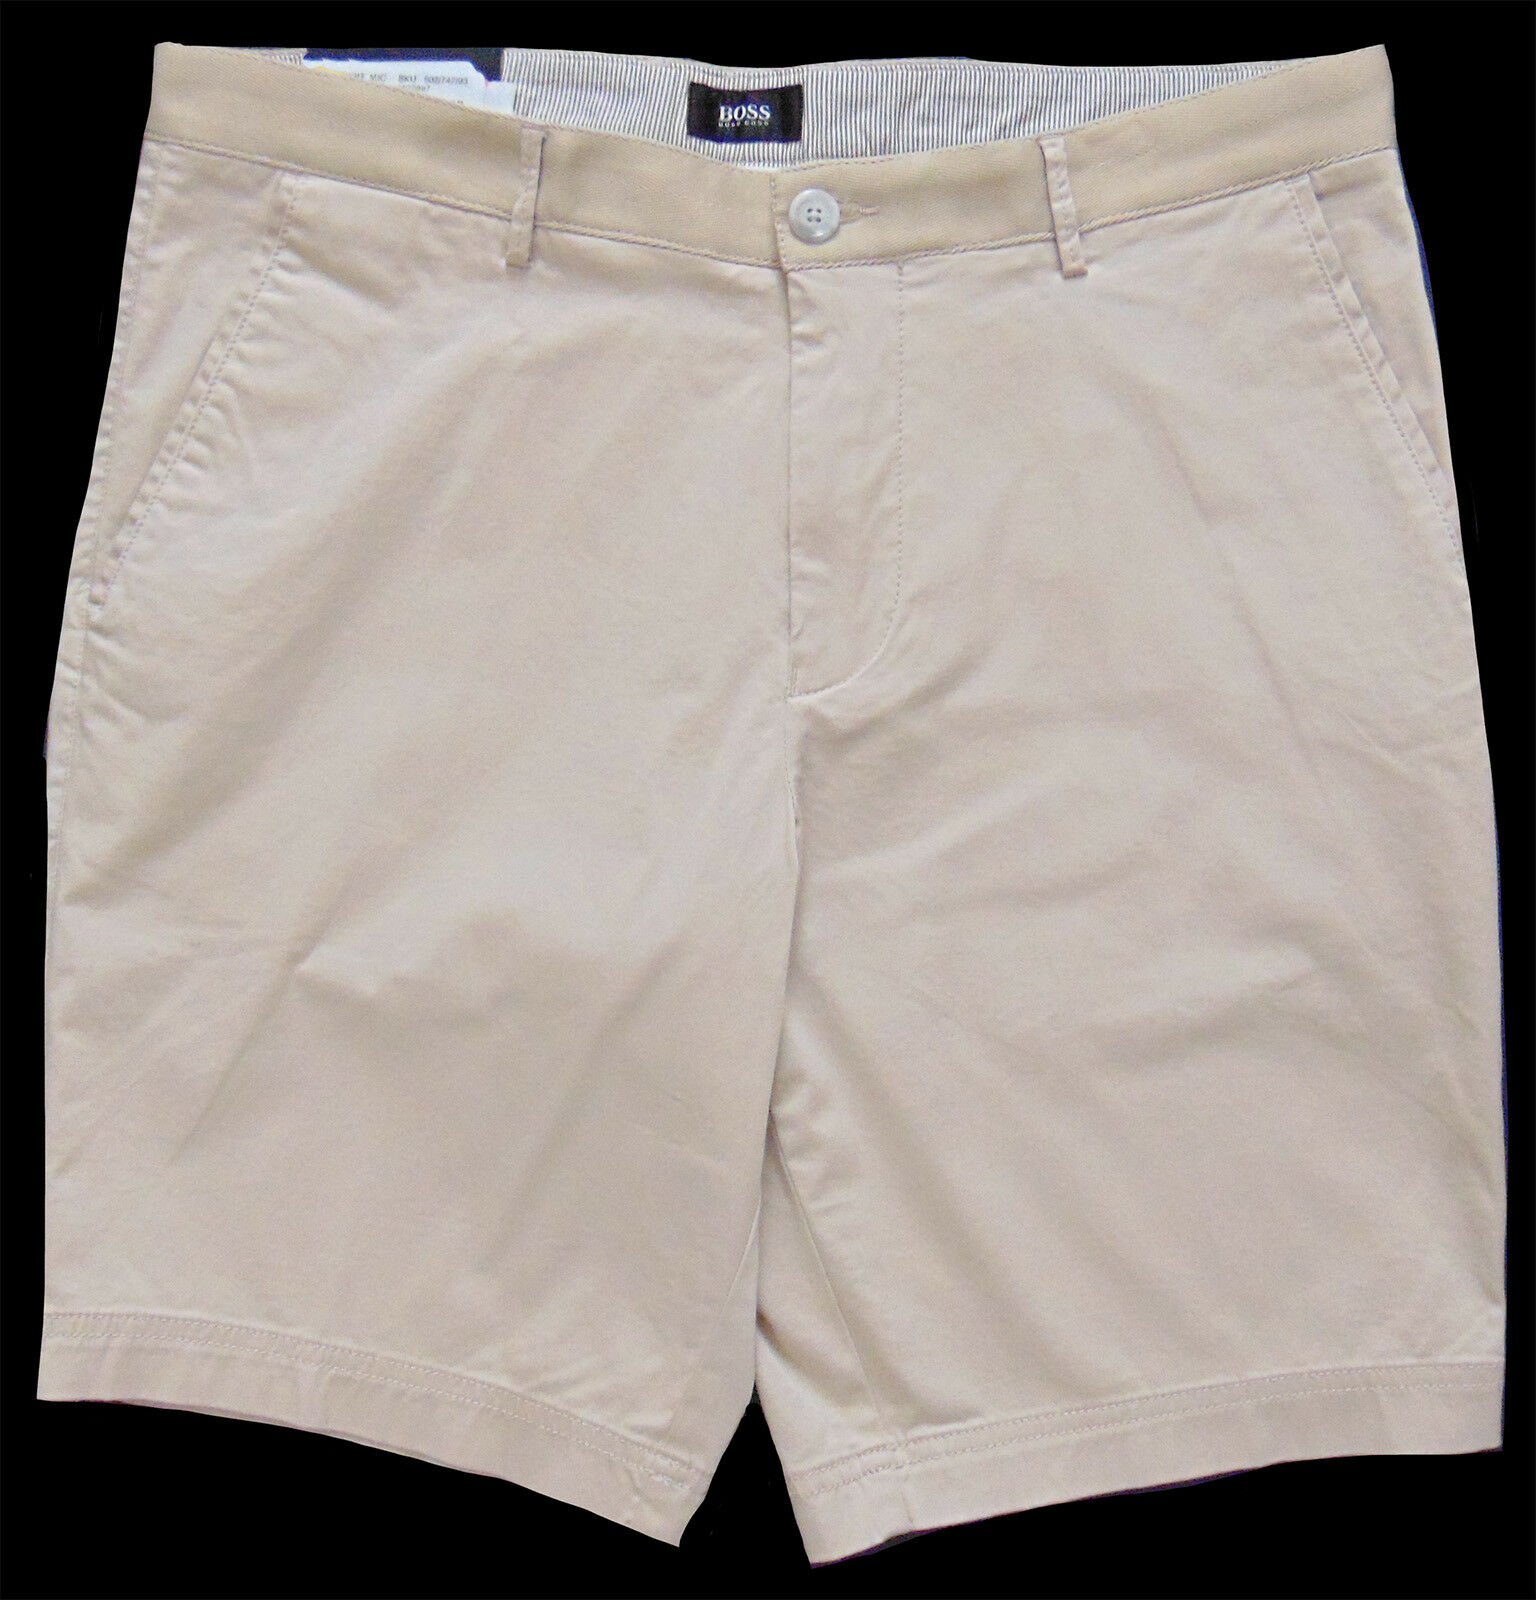 Men's HUGO BOSS Khaki Sand Cotton + Shorts 30 30R (Euro 46) NWT NEW + Crigan